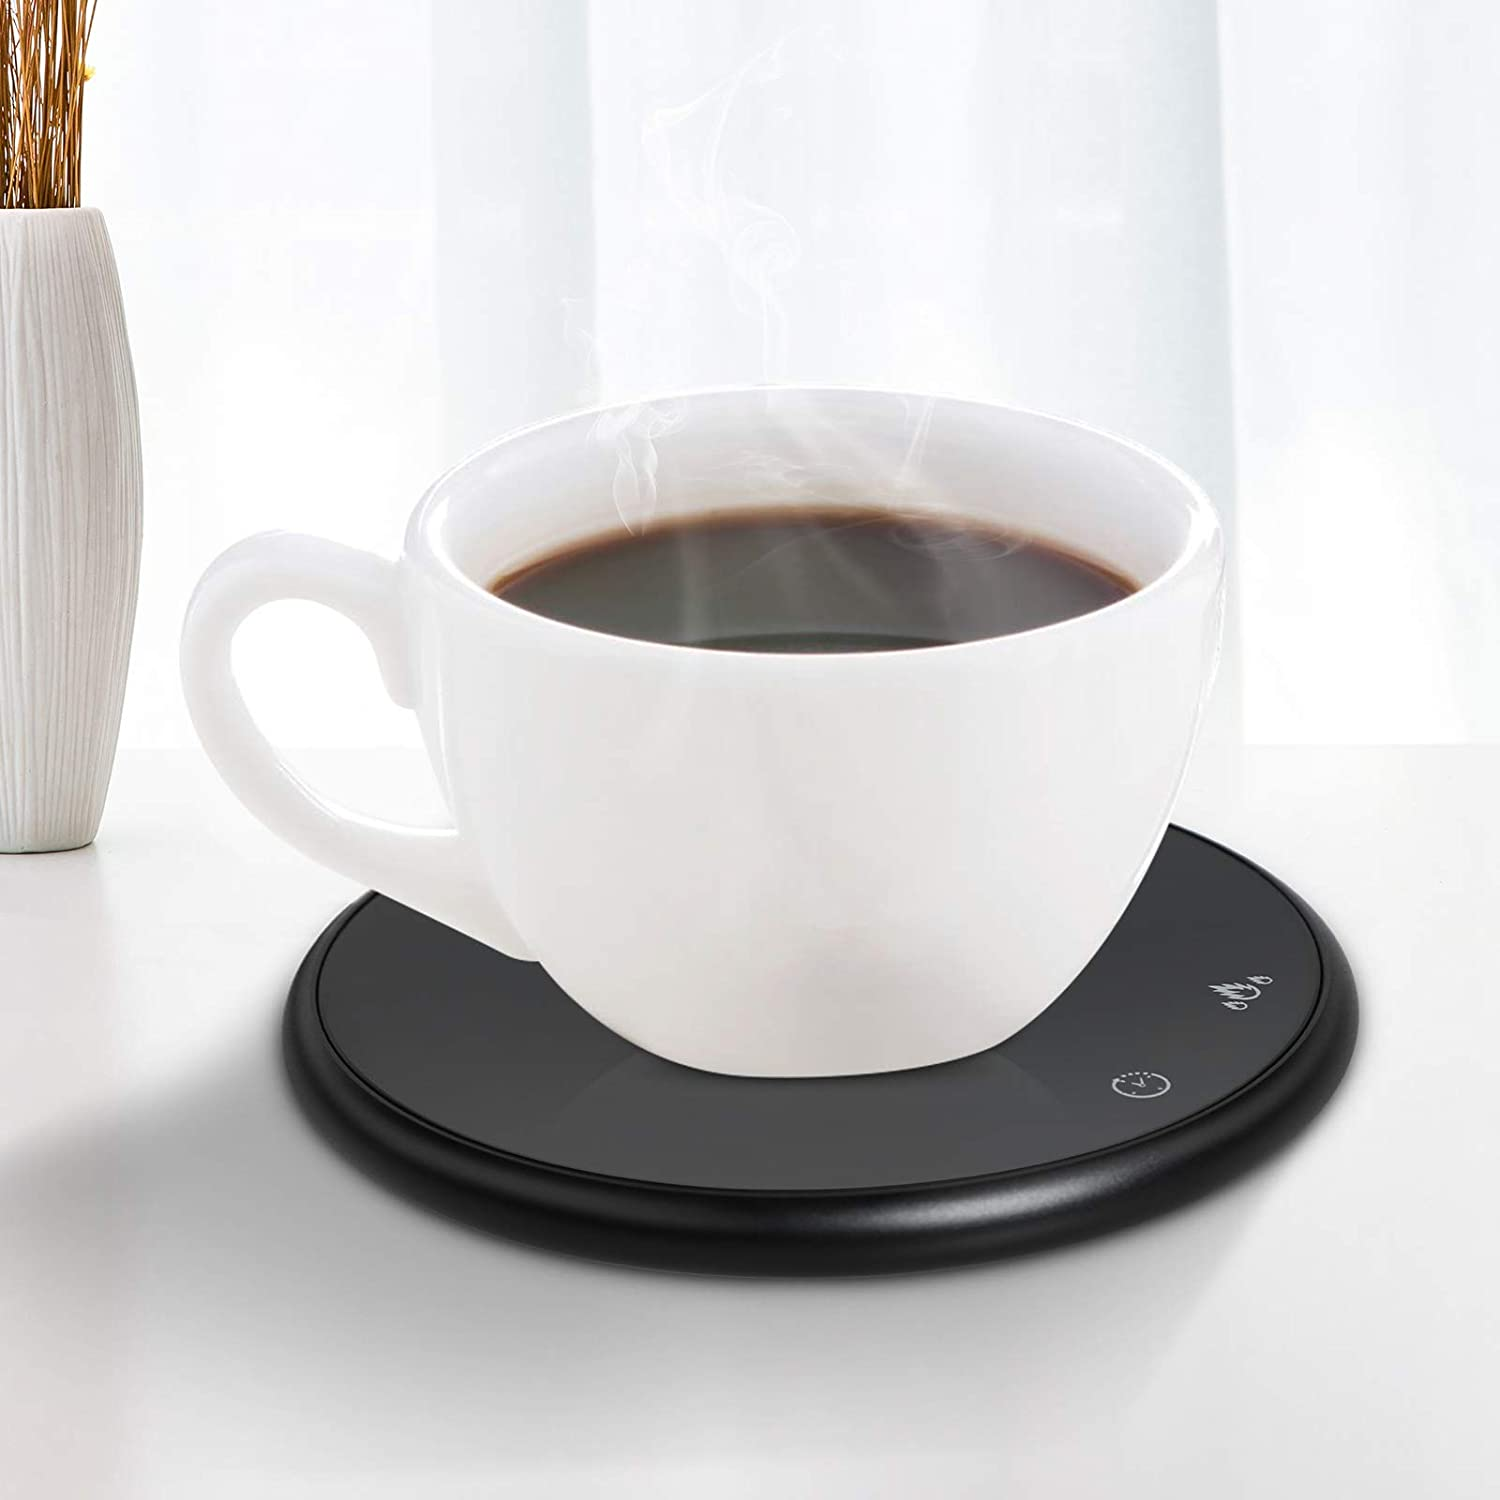 Wistopht Coffee Cup Warmer Pad - Coffee Mug Warmer, Electric Beverage Cup Warmer for Office Desk Use, Cup Heater Pad for Cocoa Tea Water Milk with Cup Sensing Touch Control Tech